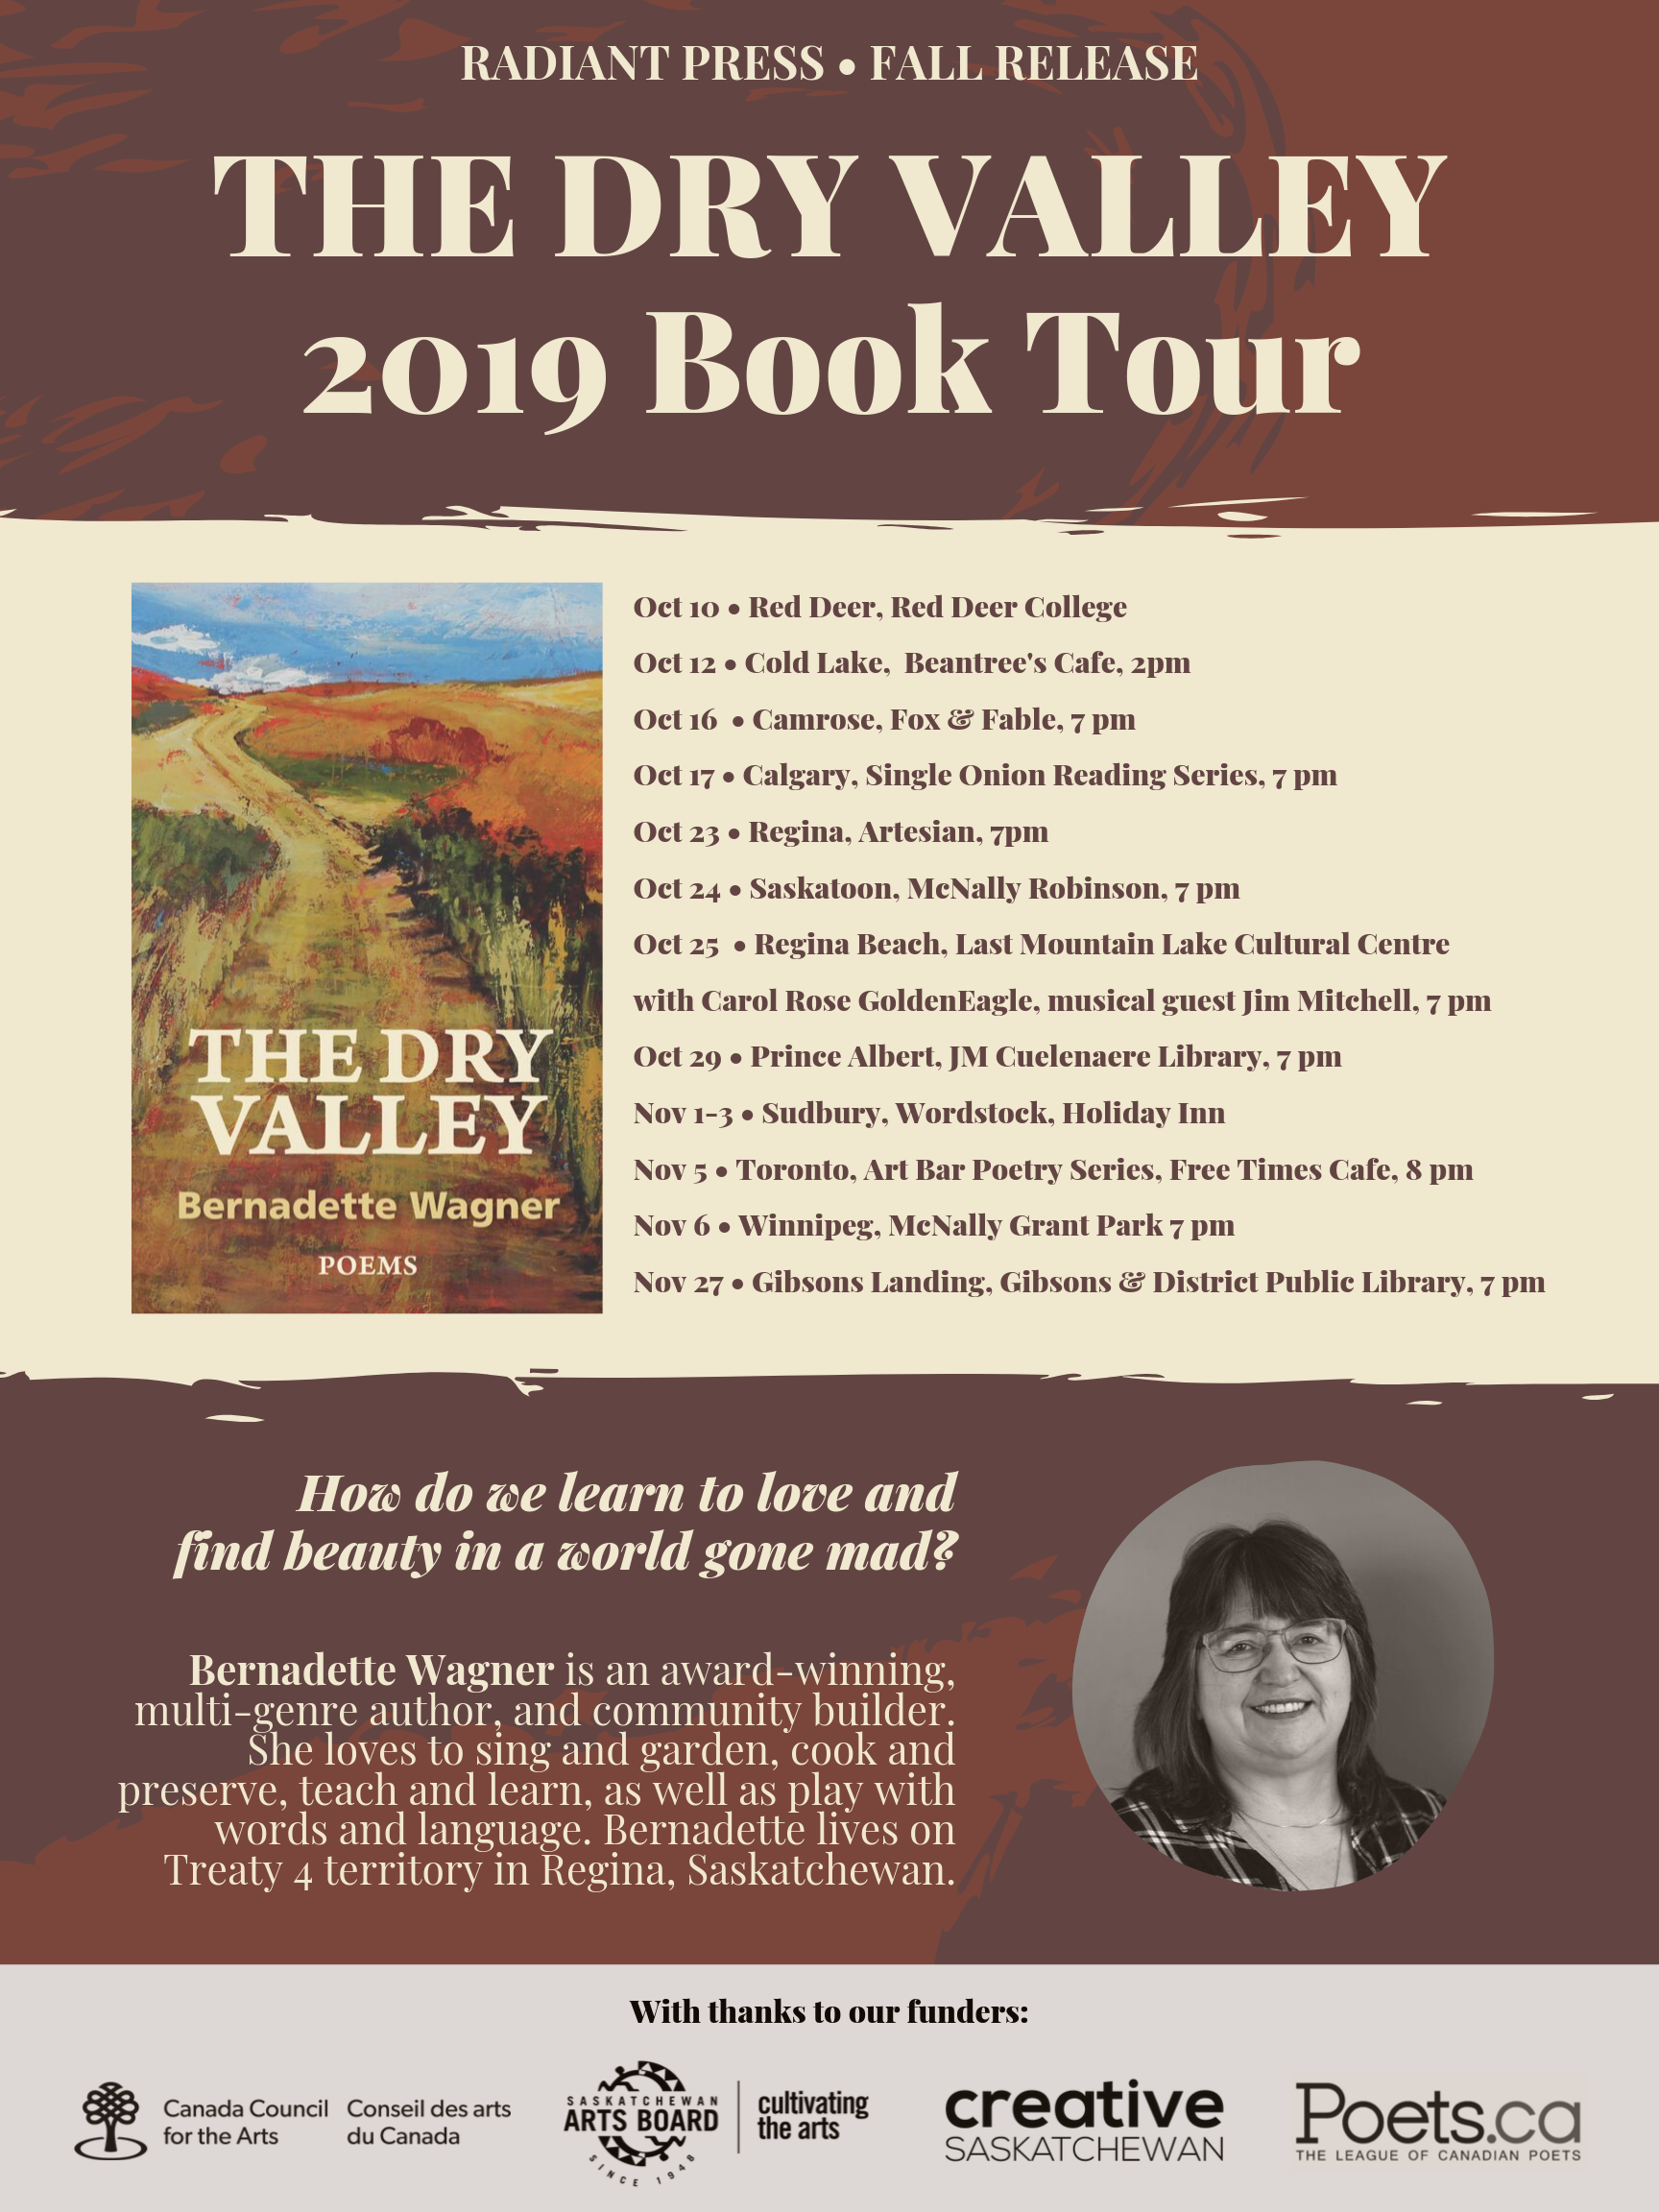 THE DRY VALLEY Bernadette Wagner 2019 Book Tour.png